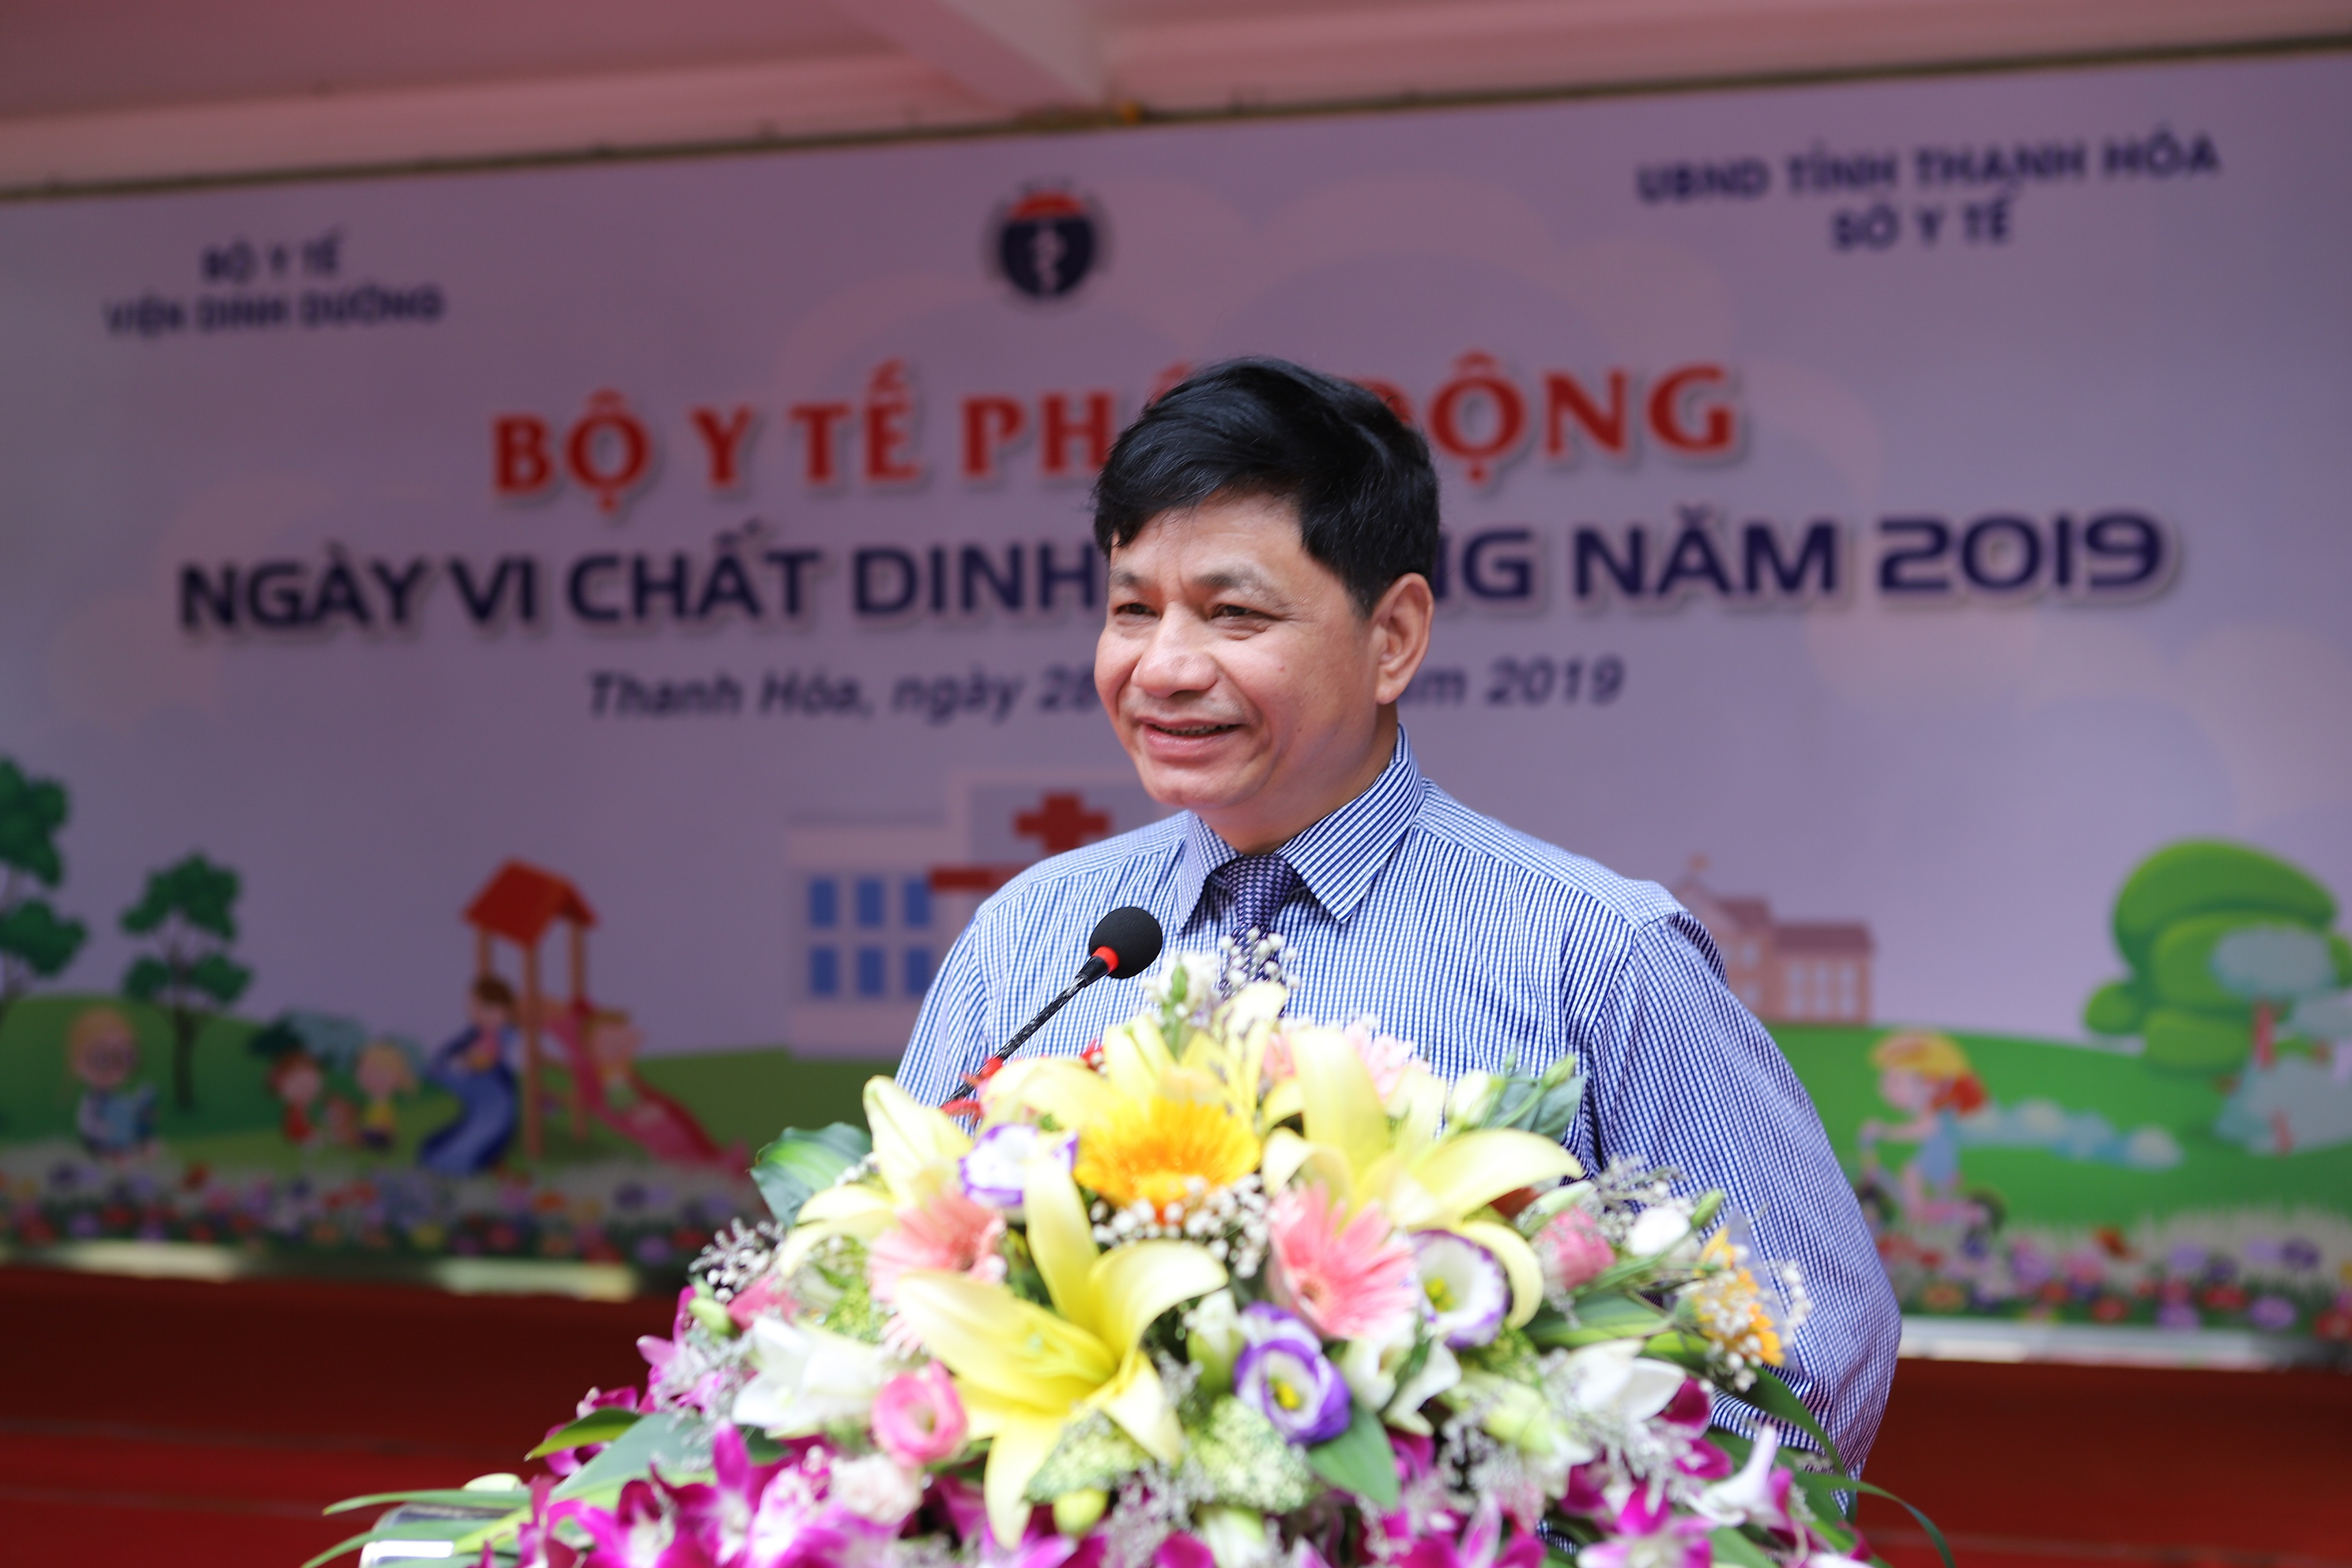 phat dong ngay vi chat dinh duong 2019